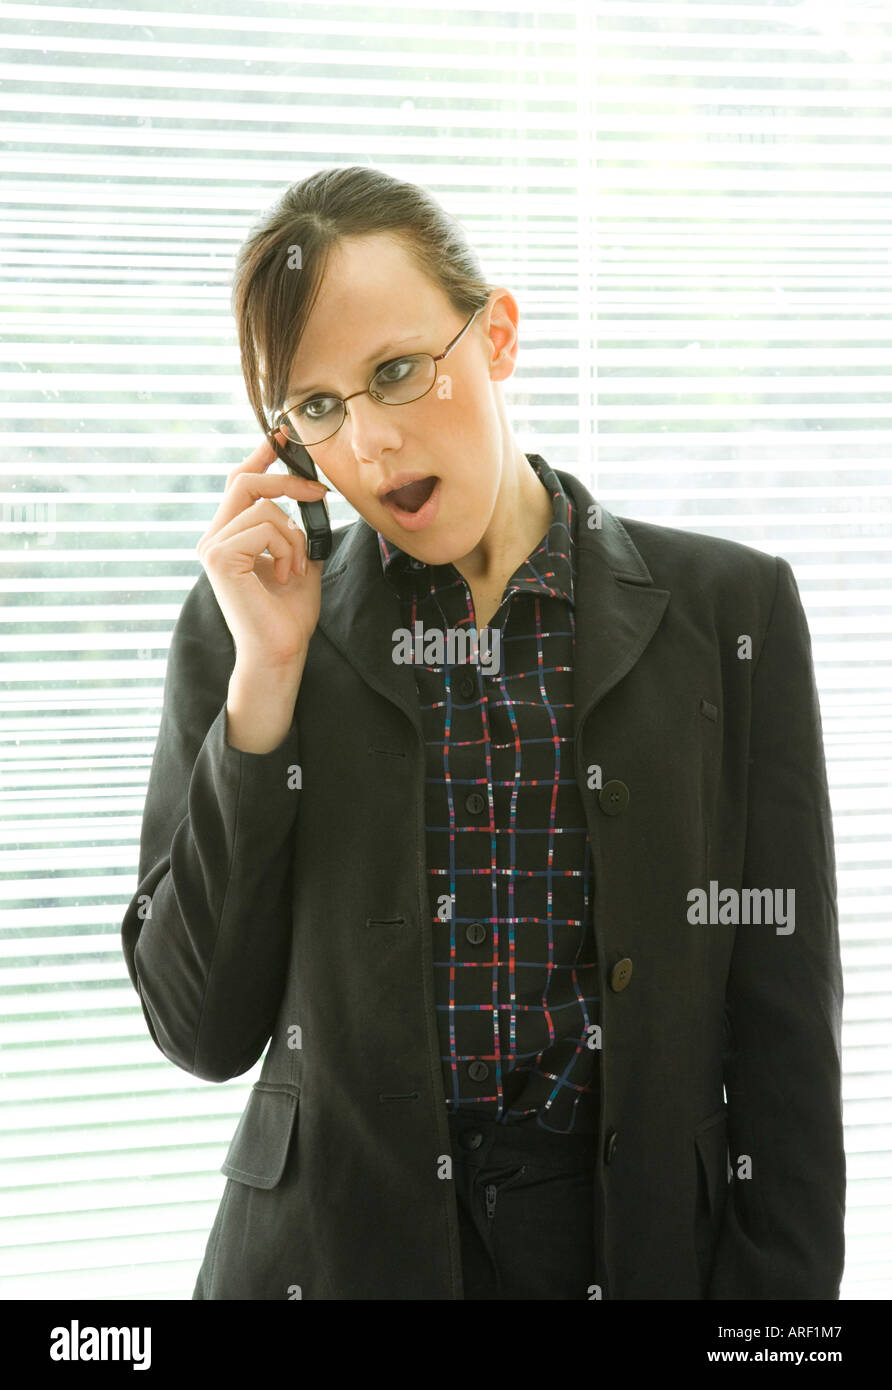 a woman speaking on a mobile phone - Stock Image